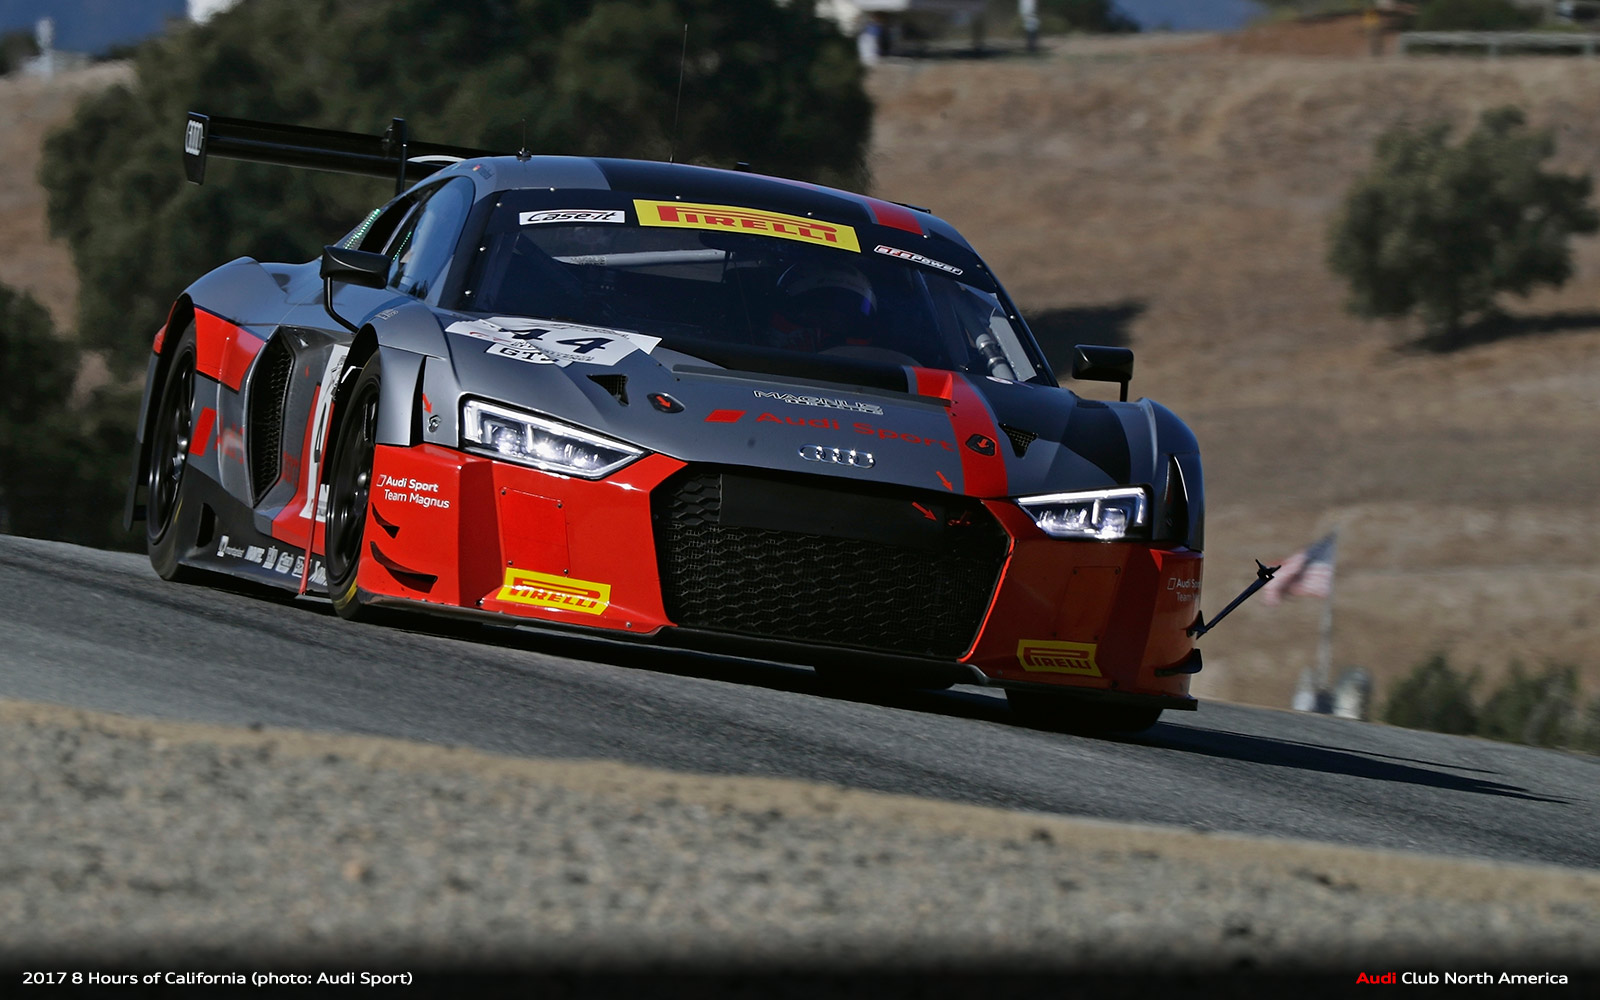 One-Two for Audi in California 8 Hours